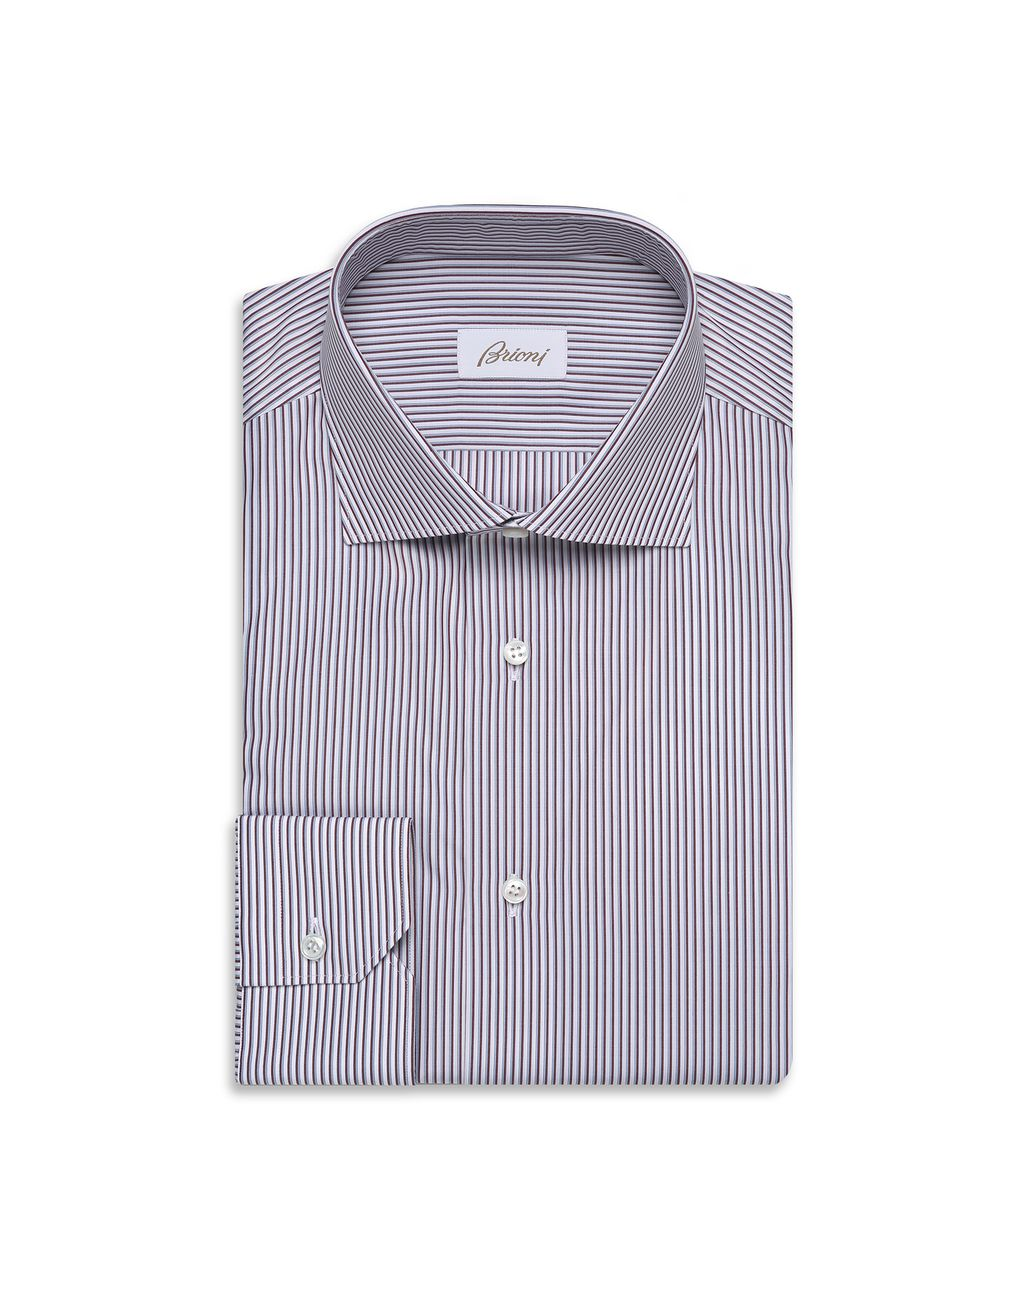 BRIONI Bordeaux and Sky Blue Striped Formal Shirt Formal shirt Man f